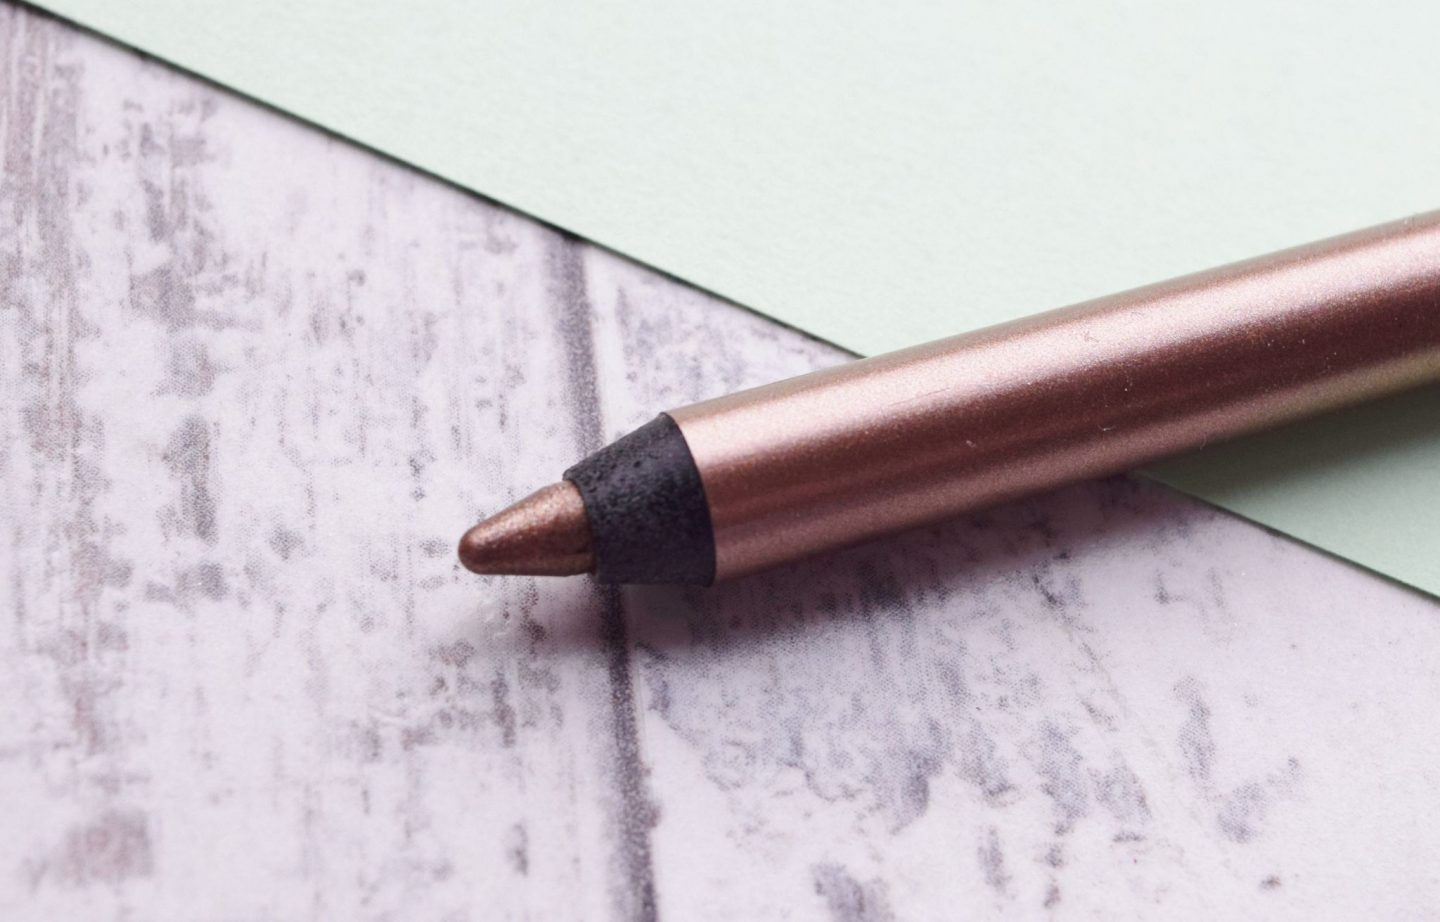 Pixi Beauty Endless Silky Eye Pen in RoseGlow